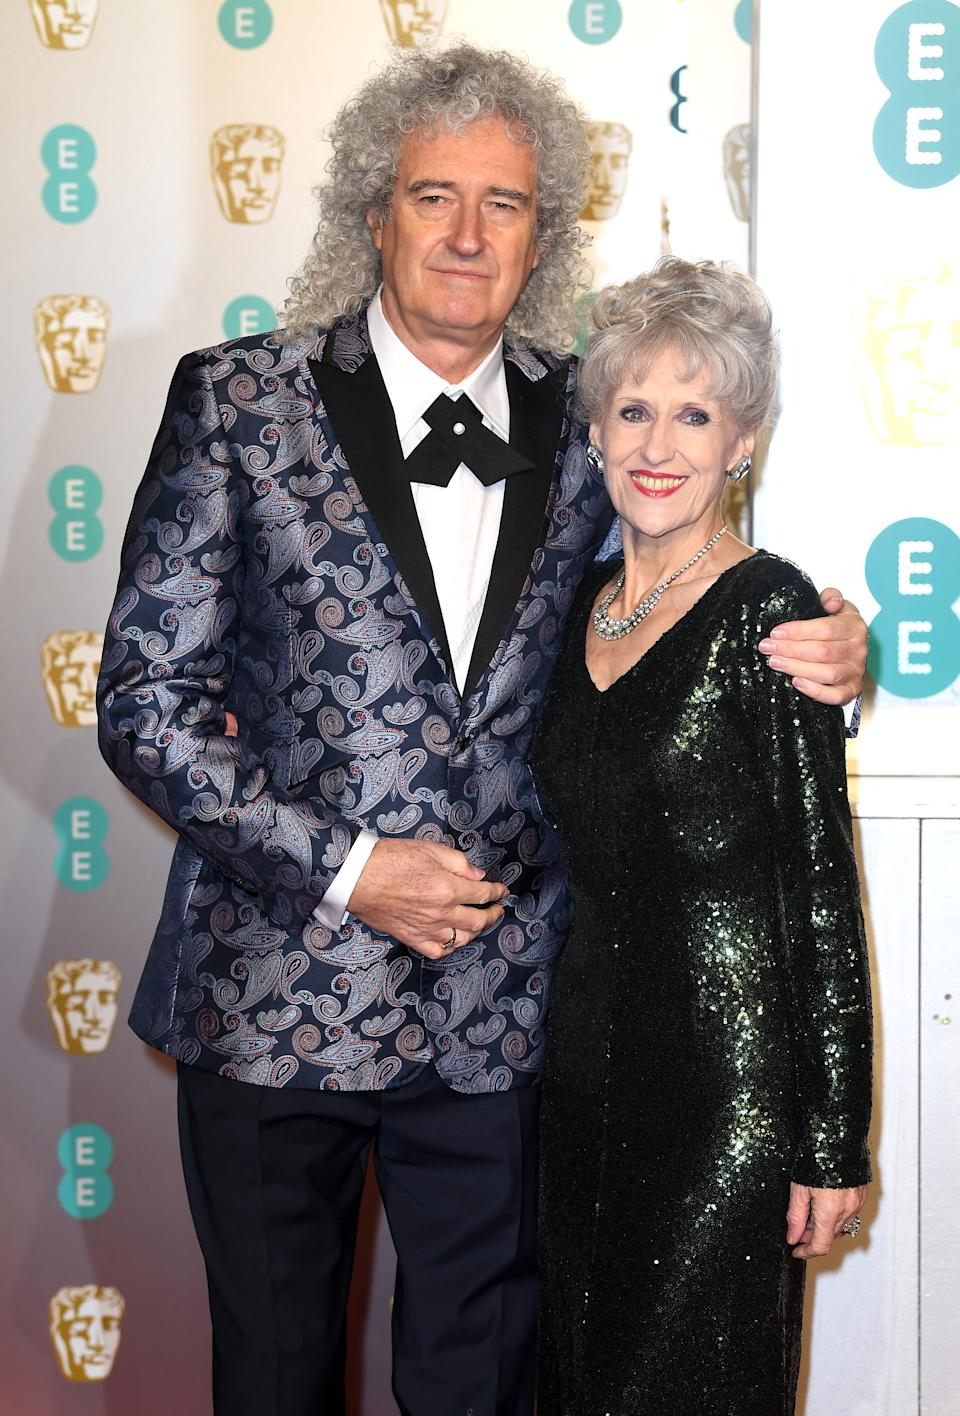 Brian May and Anita Dobson attending the 72nd British Academy Film Awards held at the Royal Albert Hall, Kensington Gore, Kensington, London